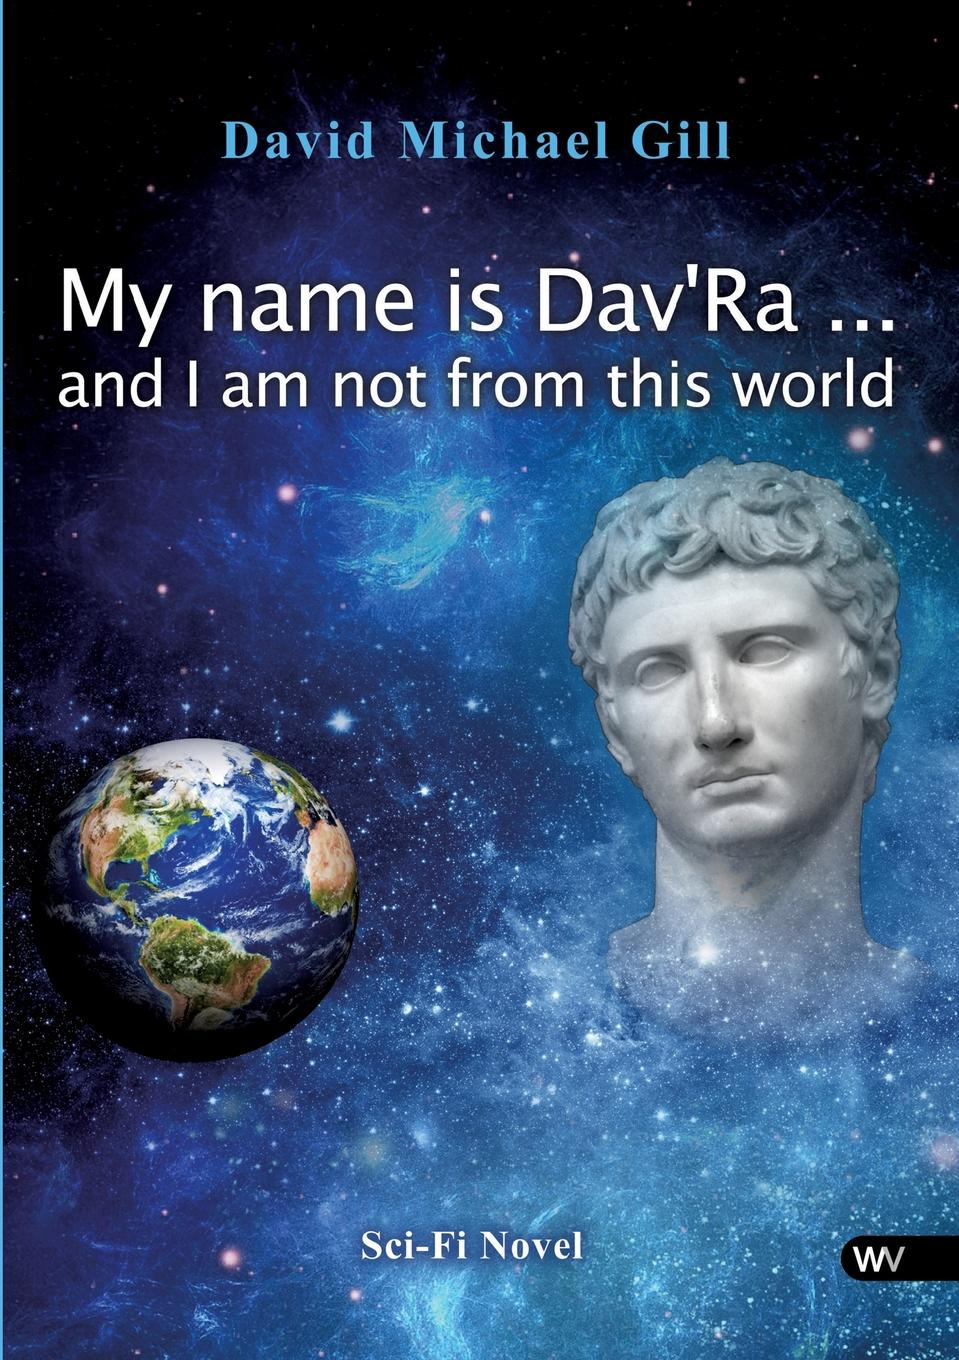 My name is Dav.Ra ... and I am not from this world